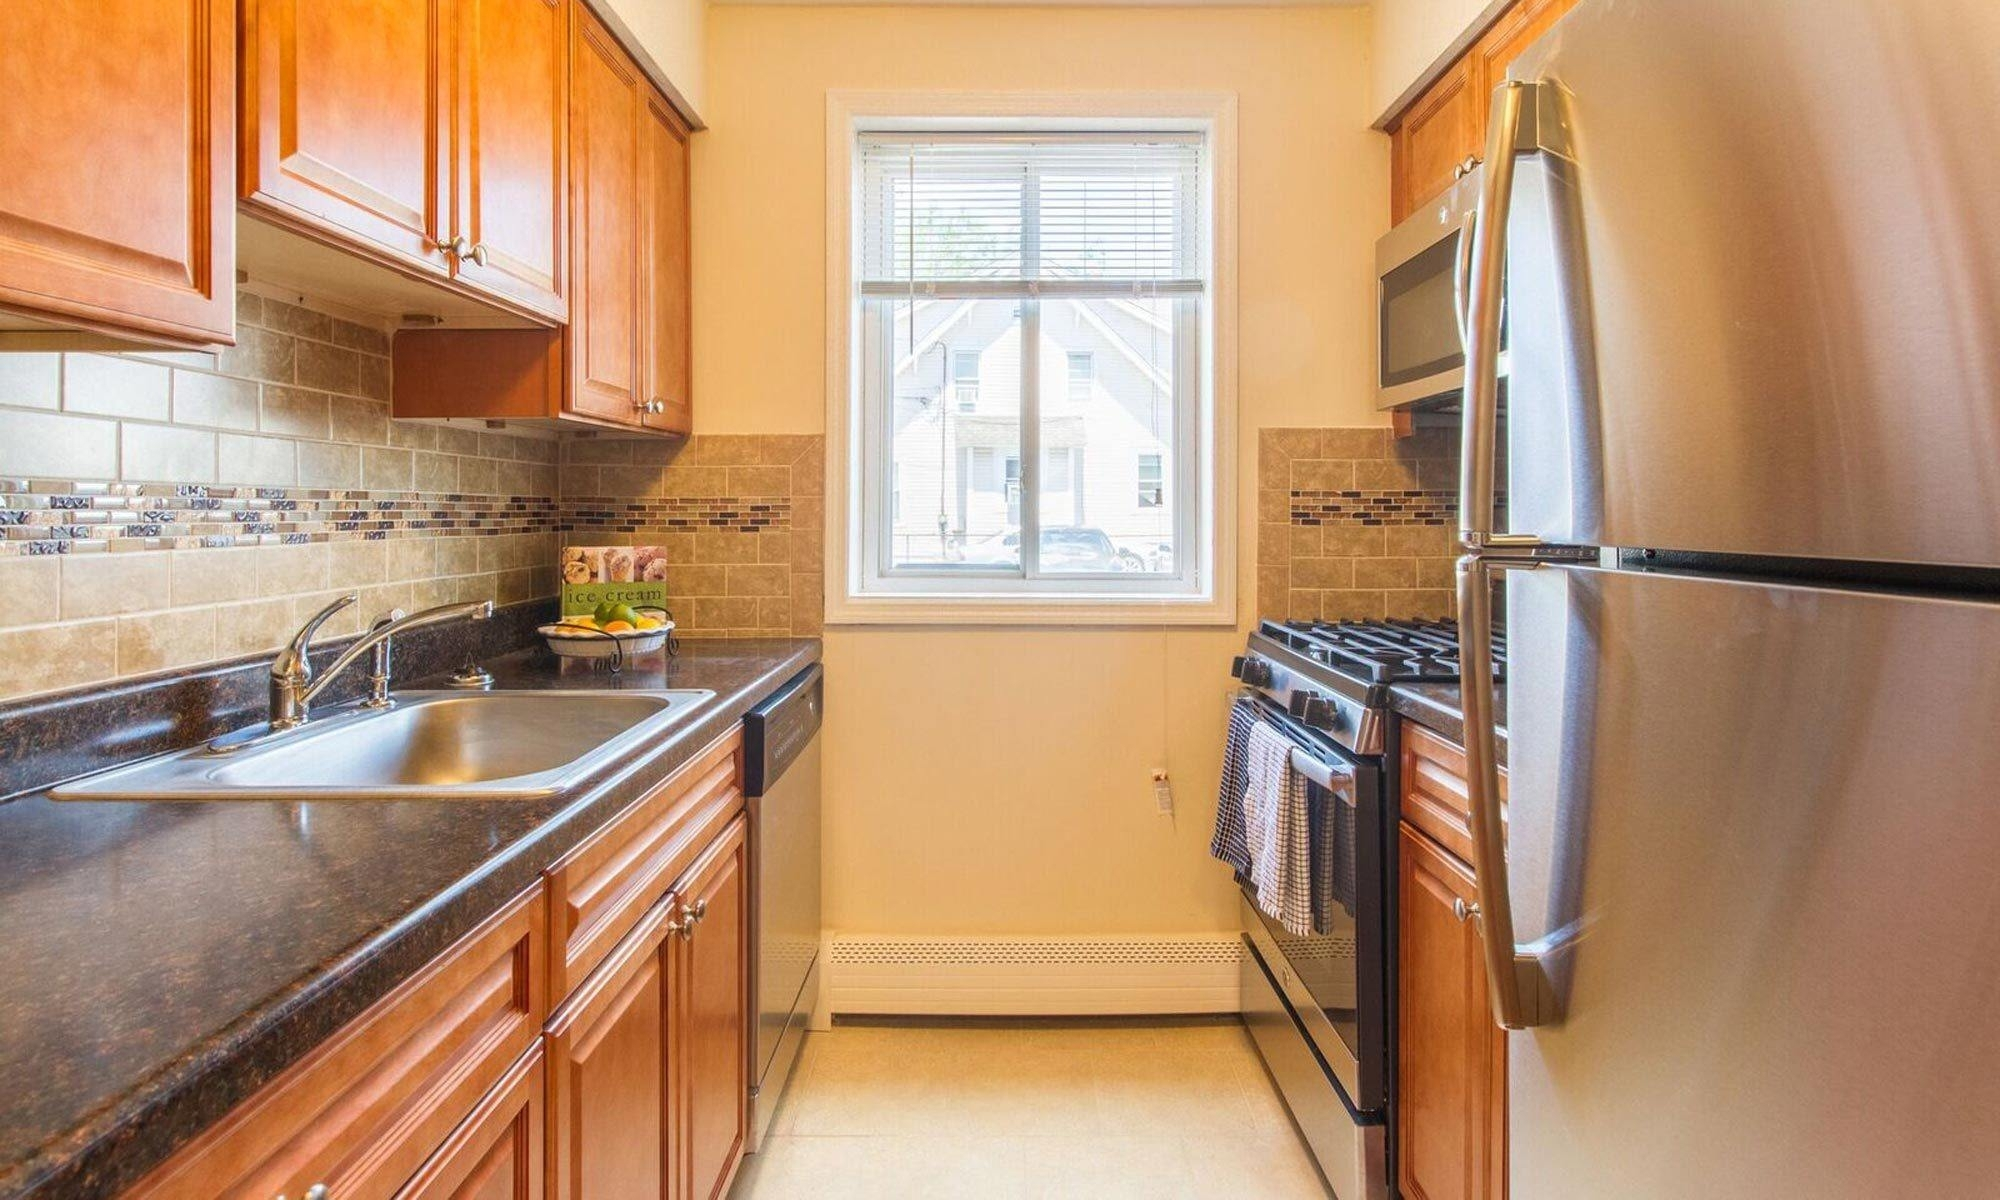 Freeport, Ny Apartments For Rent | Pine Gardens regarding Pine Gardens Apartments